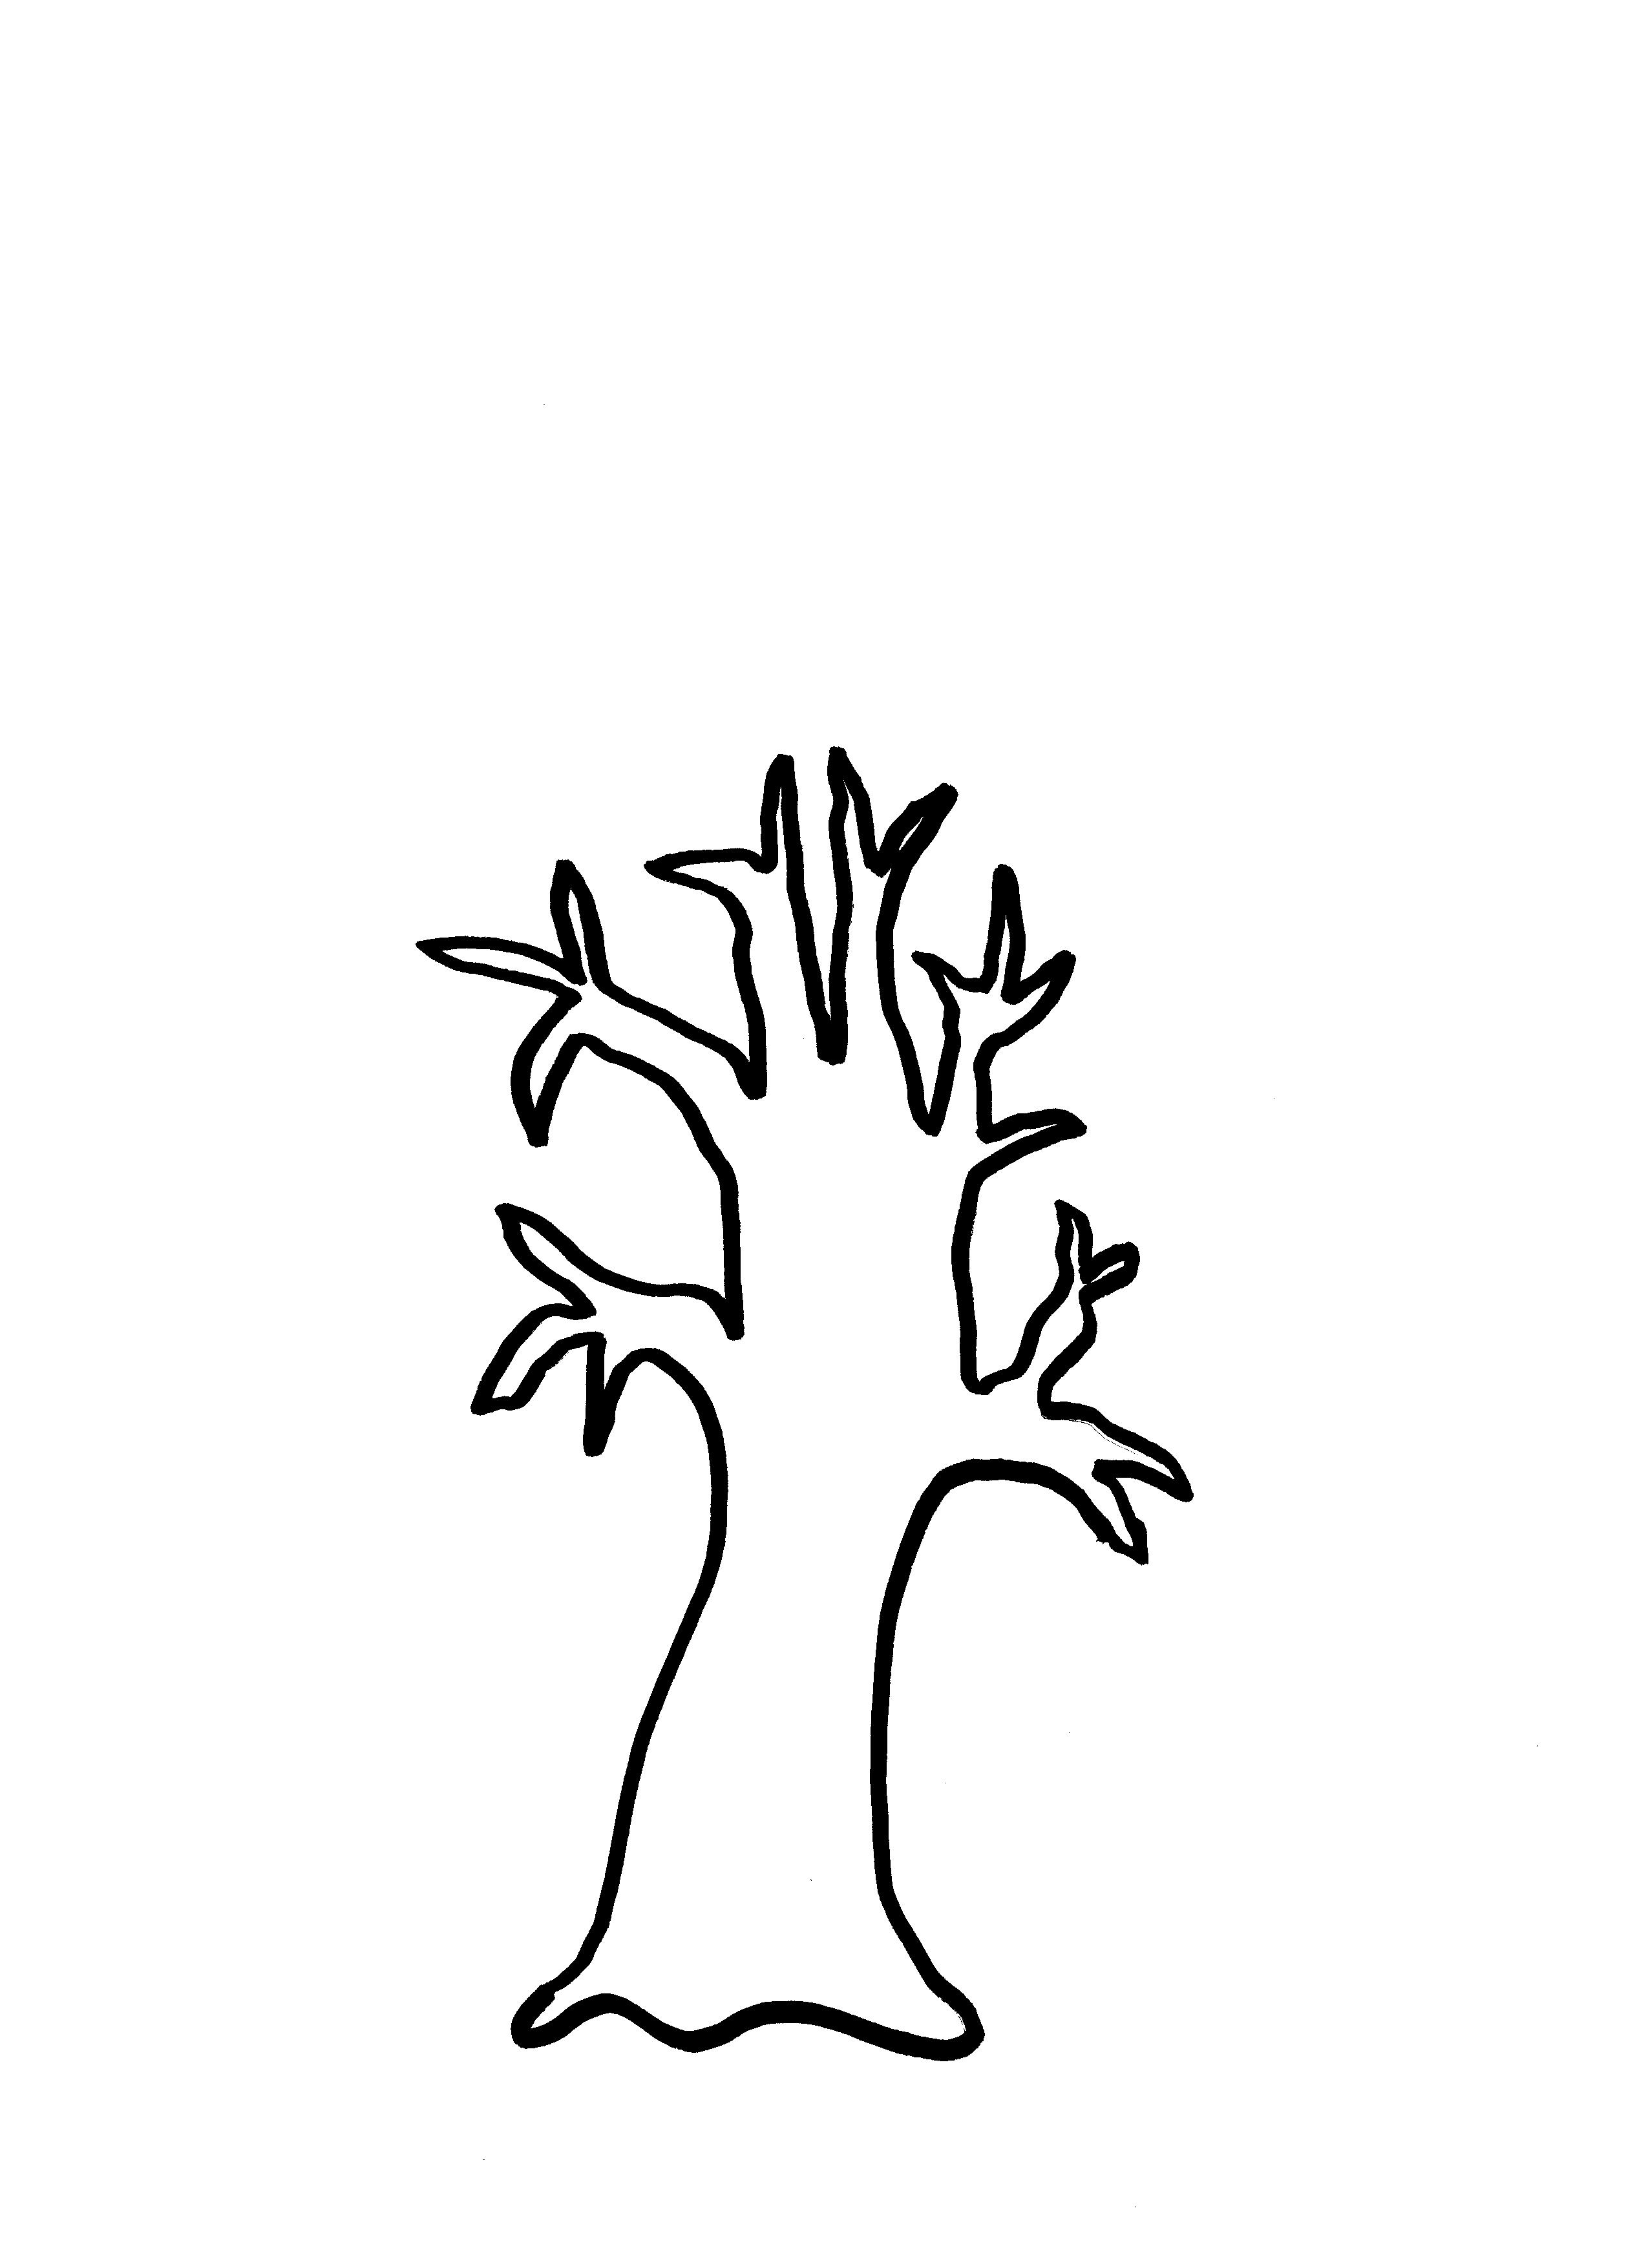 Fall Tree Clipart Black And White With 6 Branches.